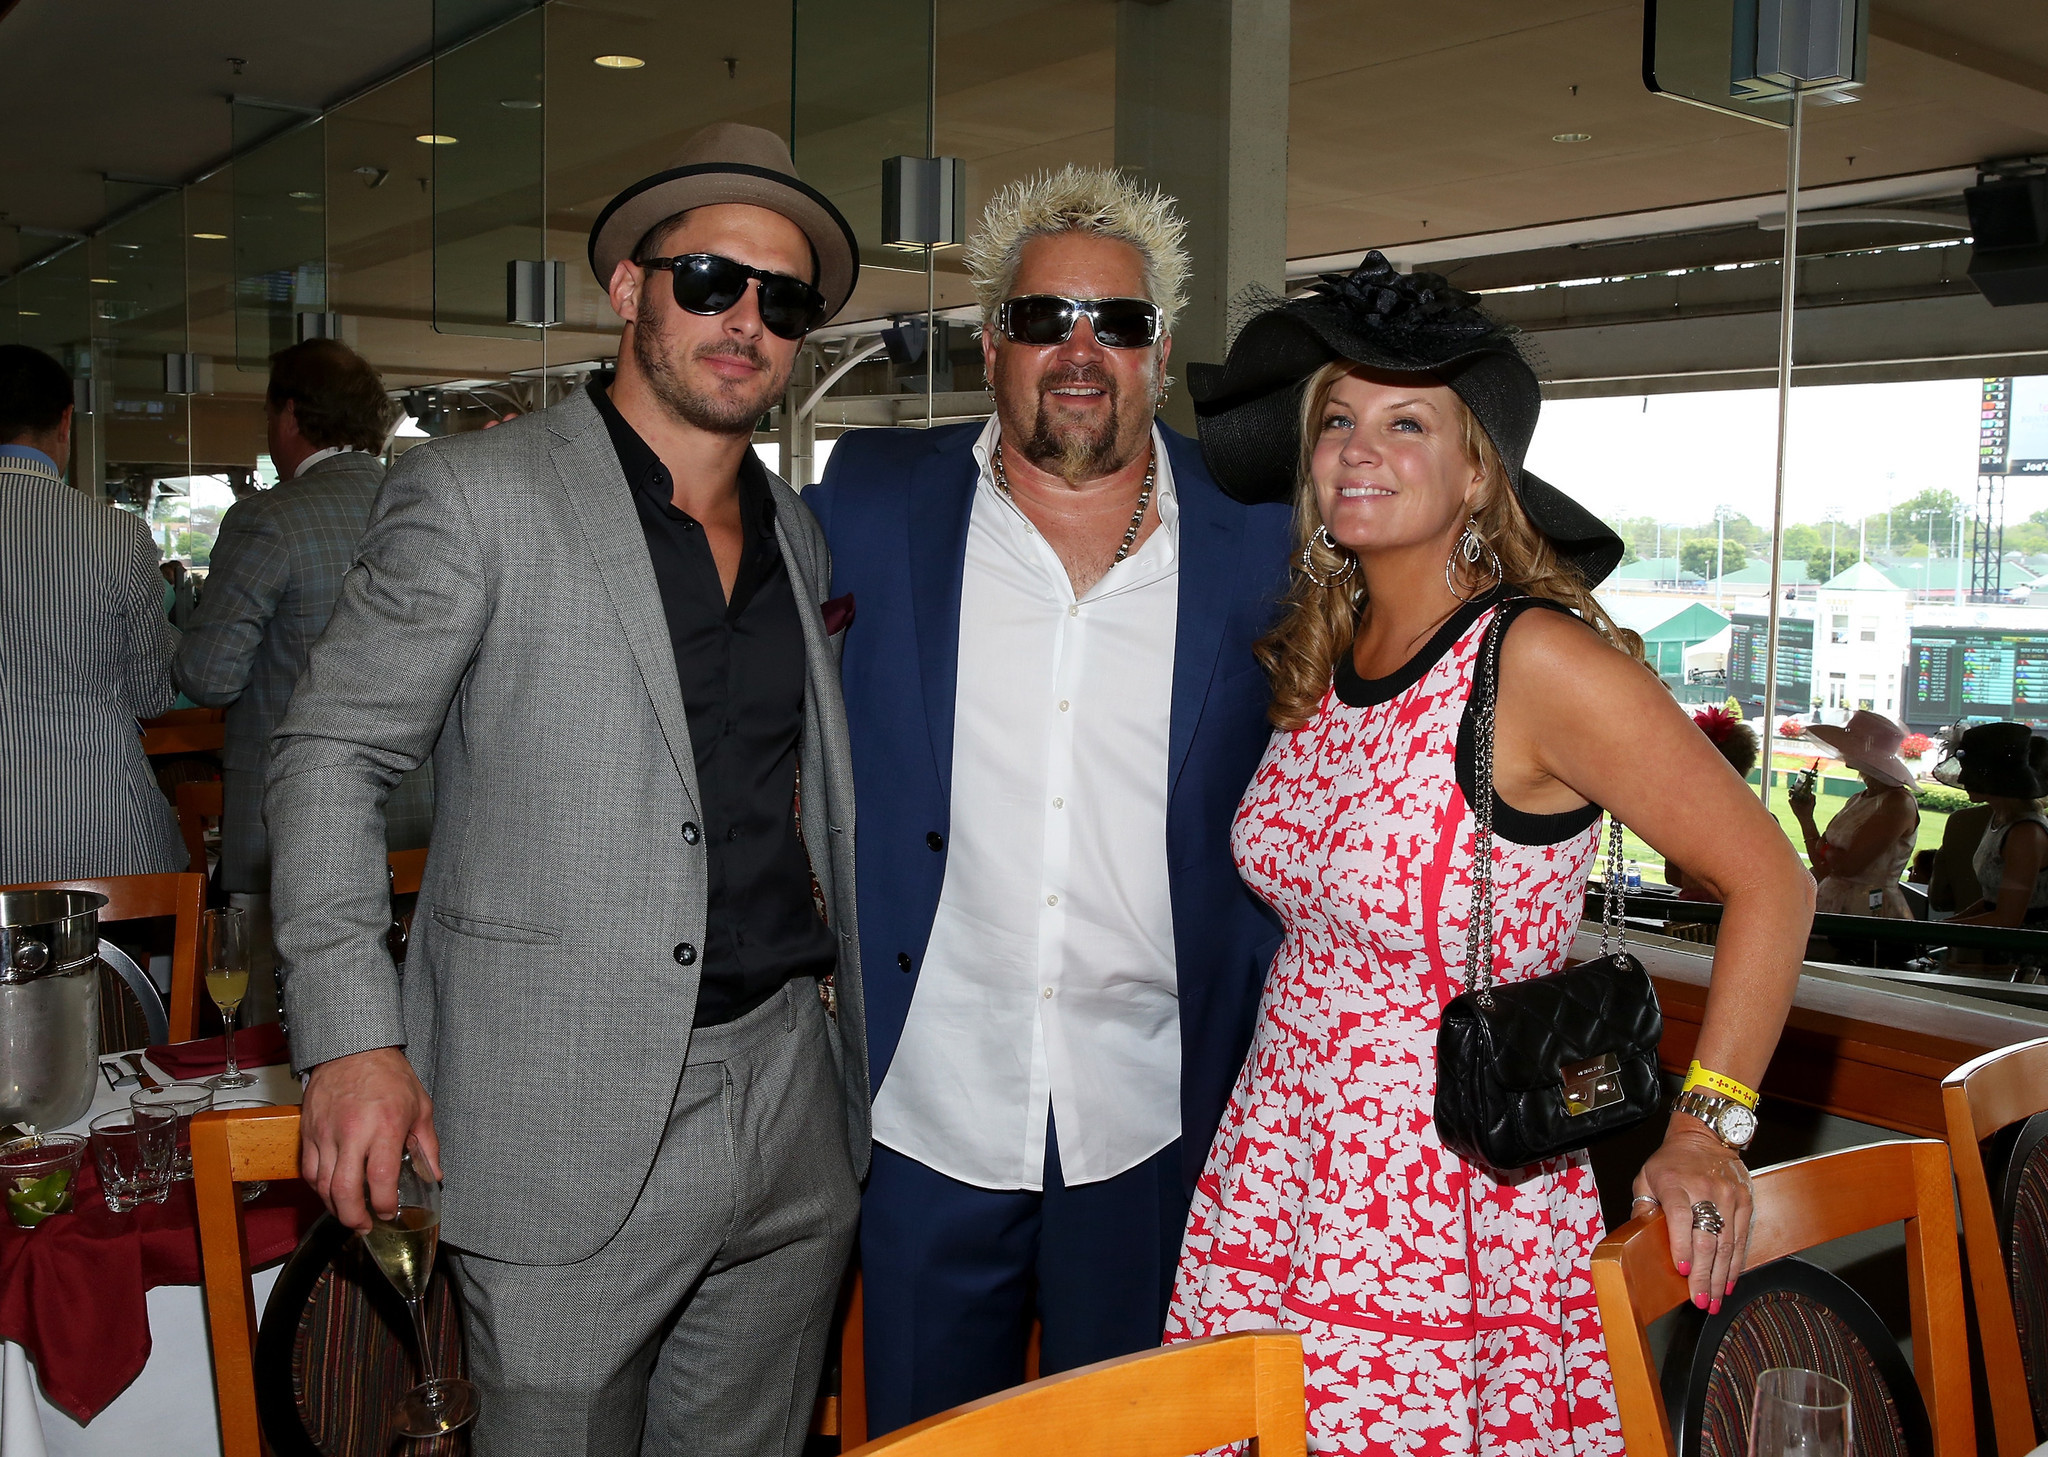 The Ministry presents: A celebrity guide to Kentucky Derby ...